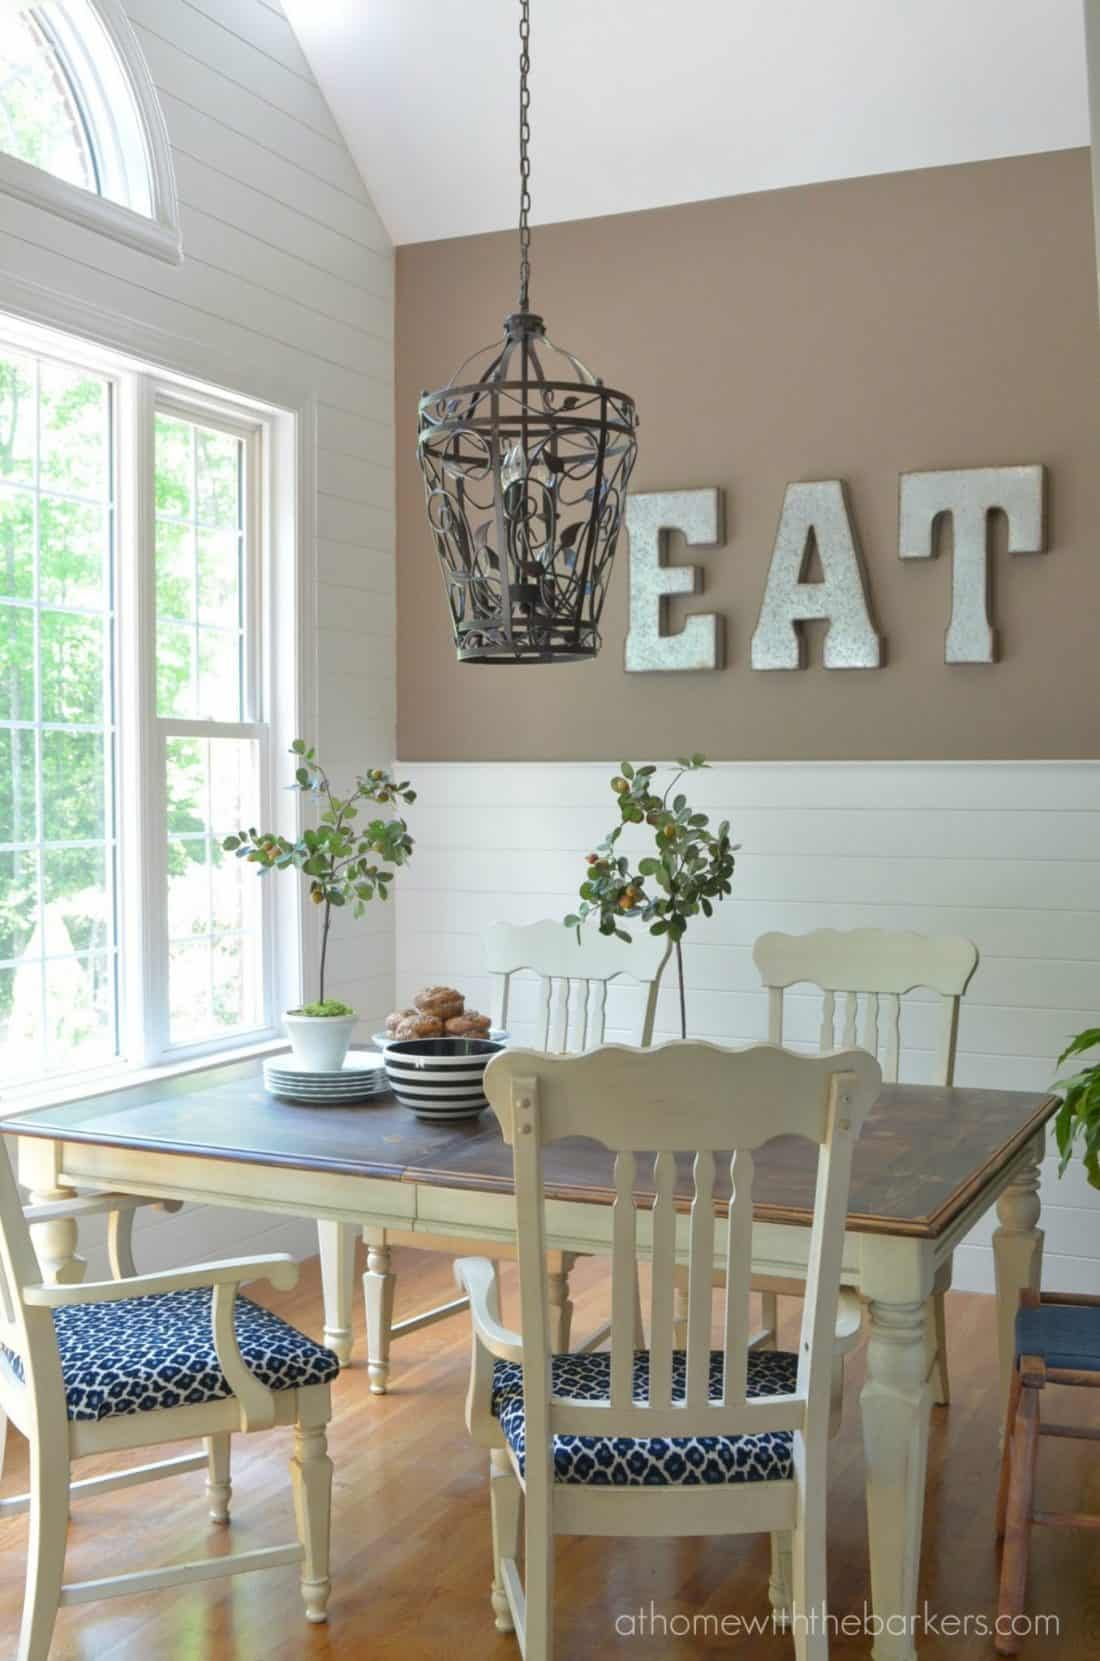 Decorating With Wood Planks